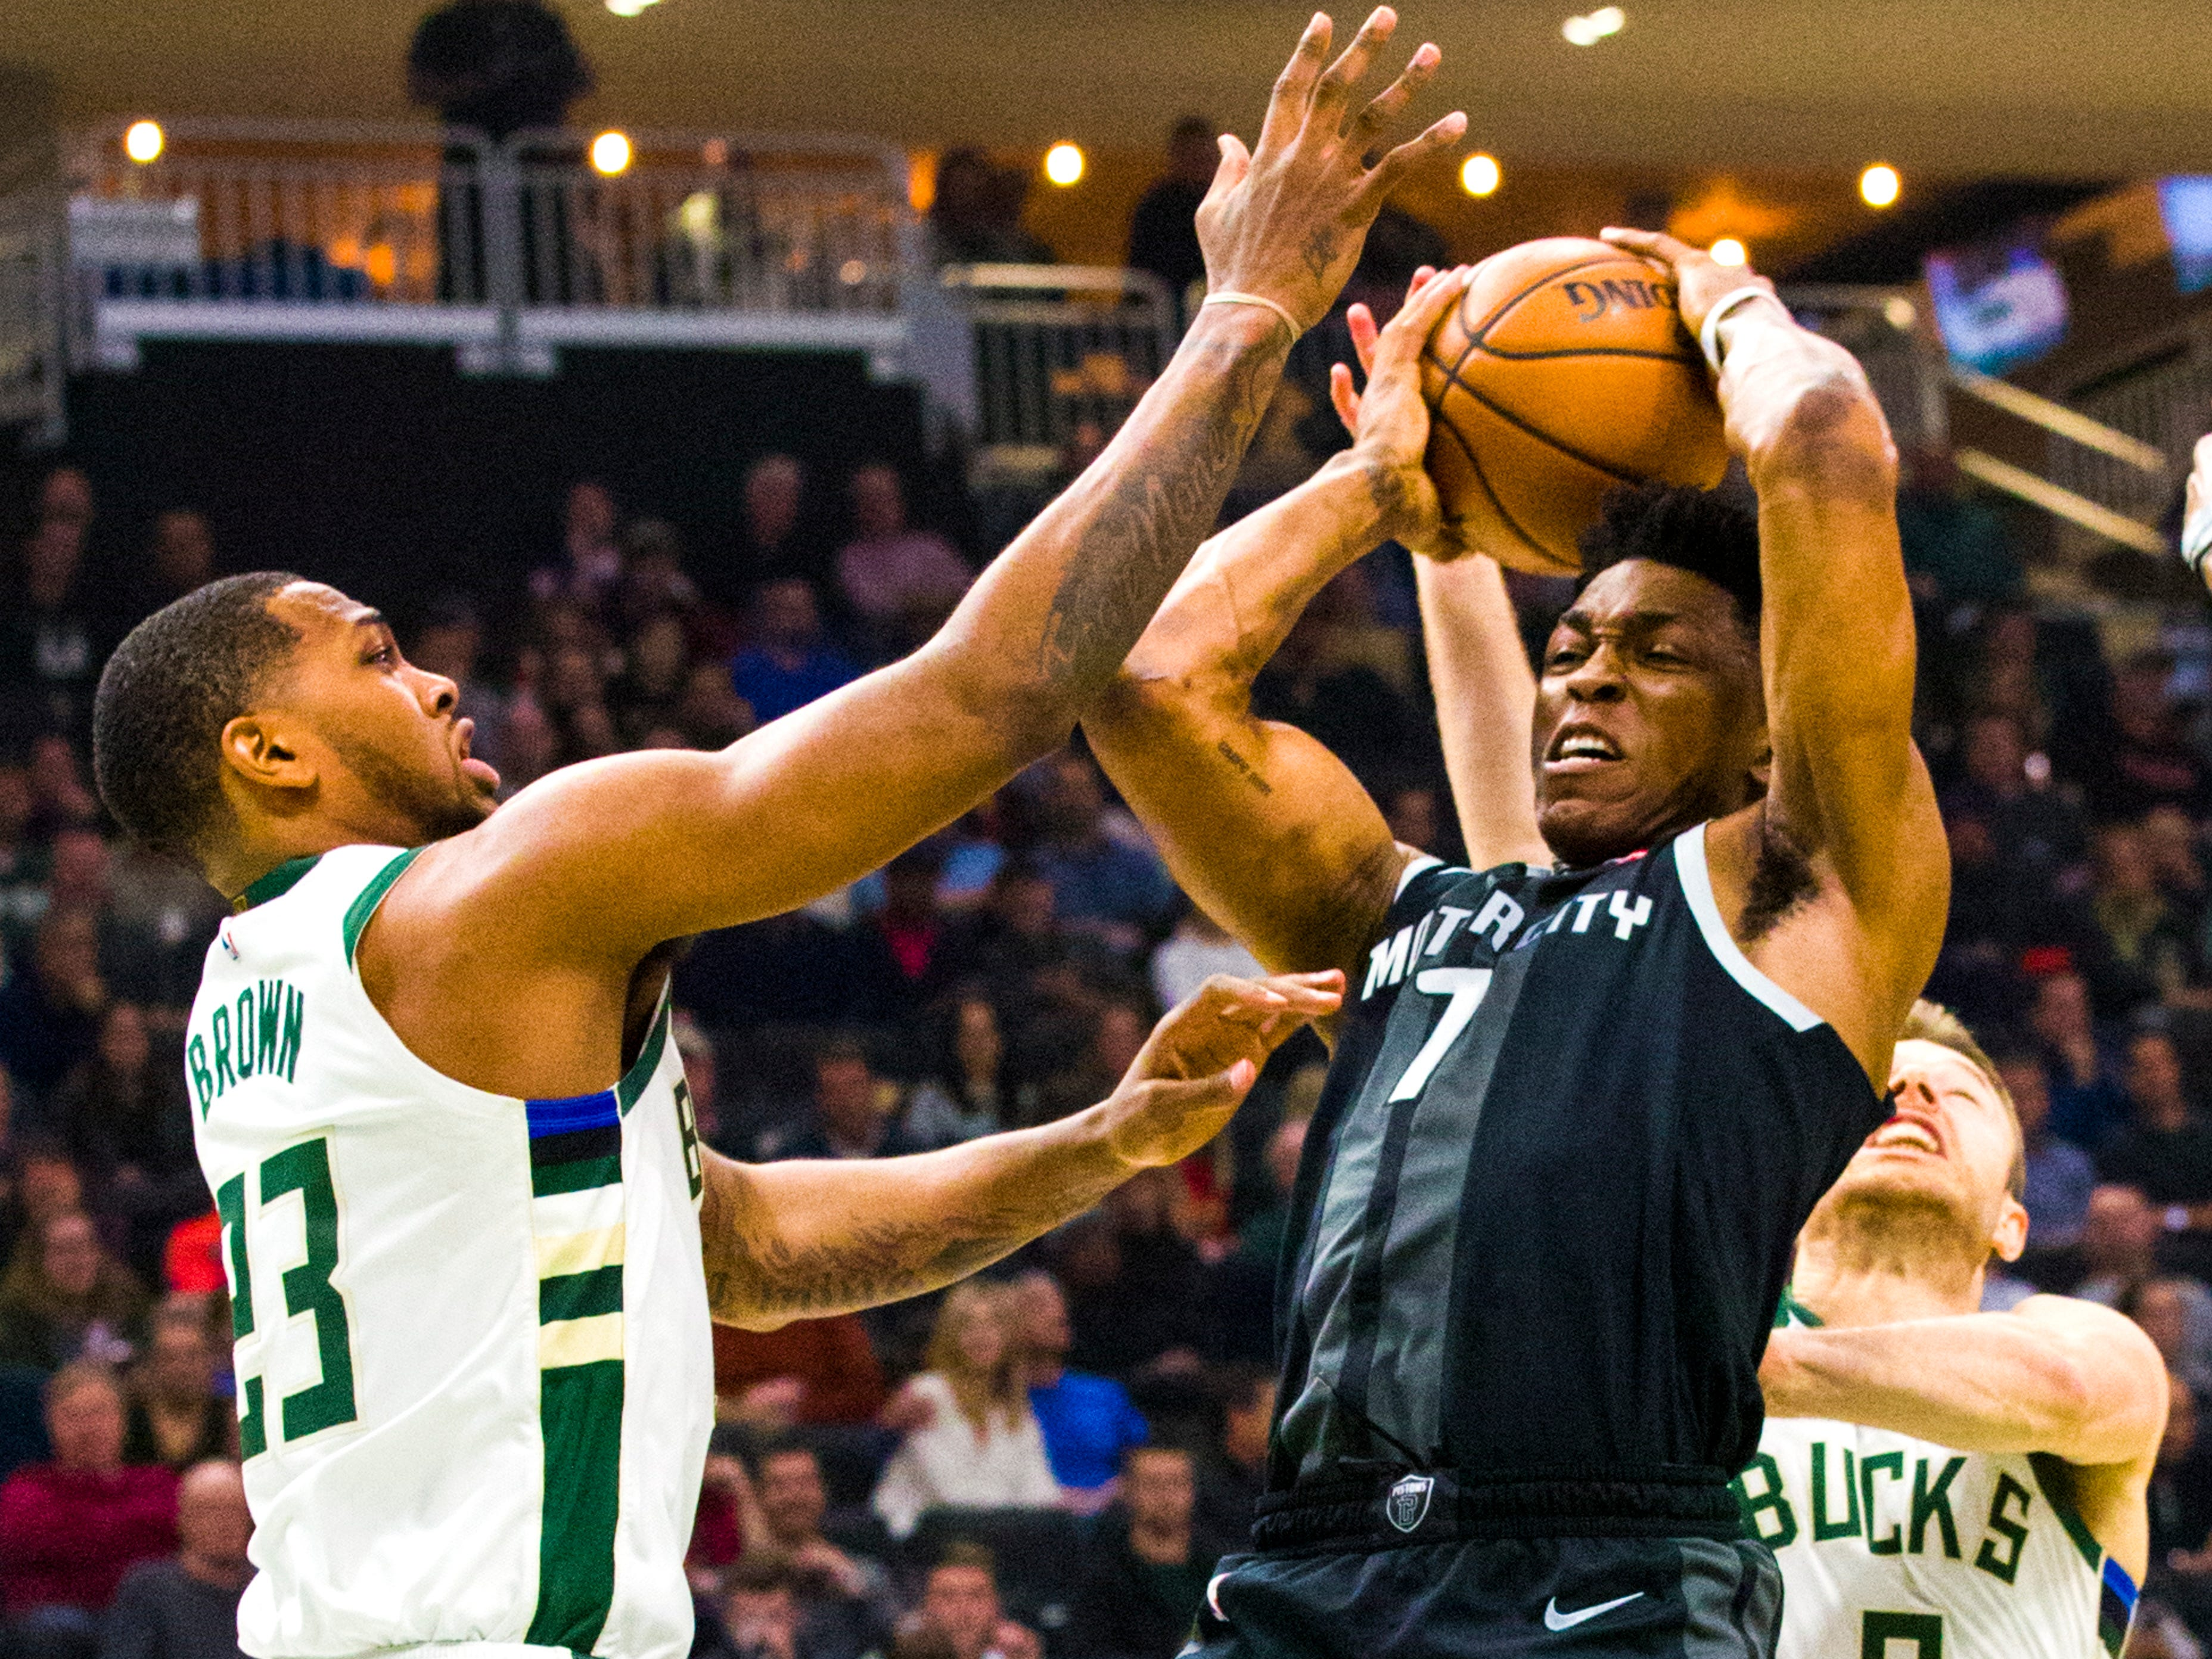 Pistons forward Stanley Johnson battles for a rebound against Sterling Brown (left) and Matthew Dellavedova of the Bucks on Monday night.